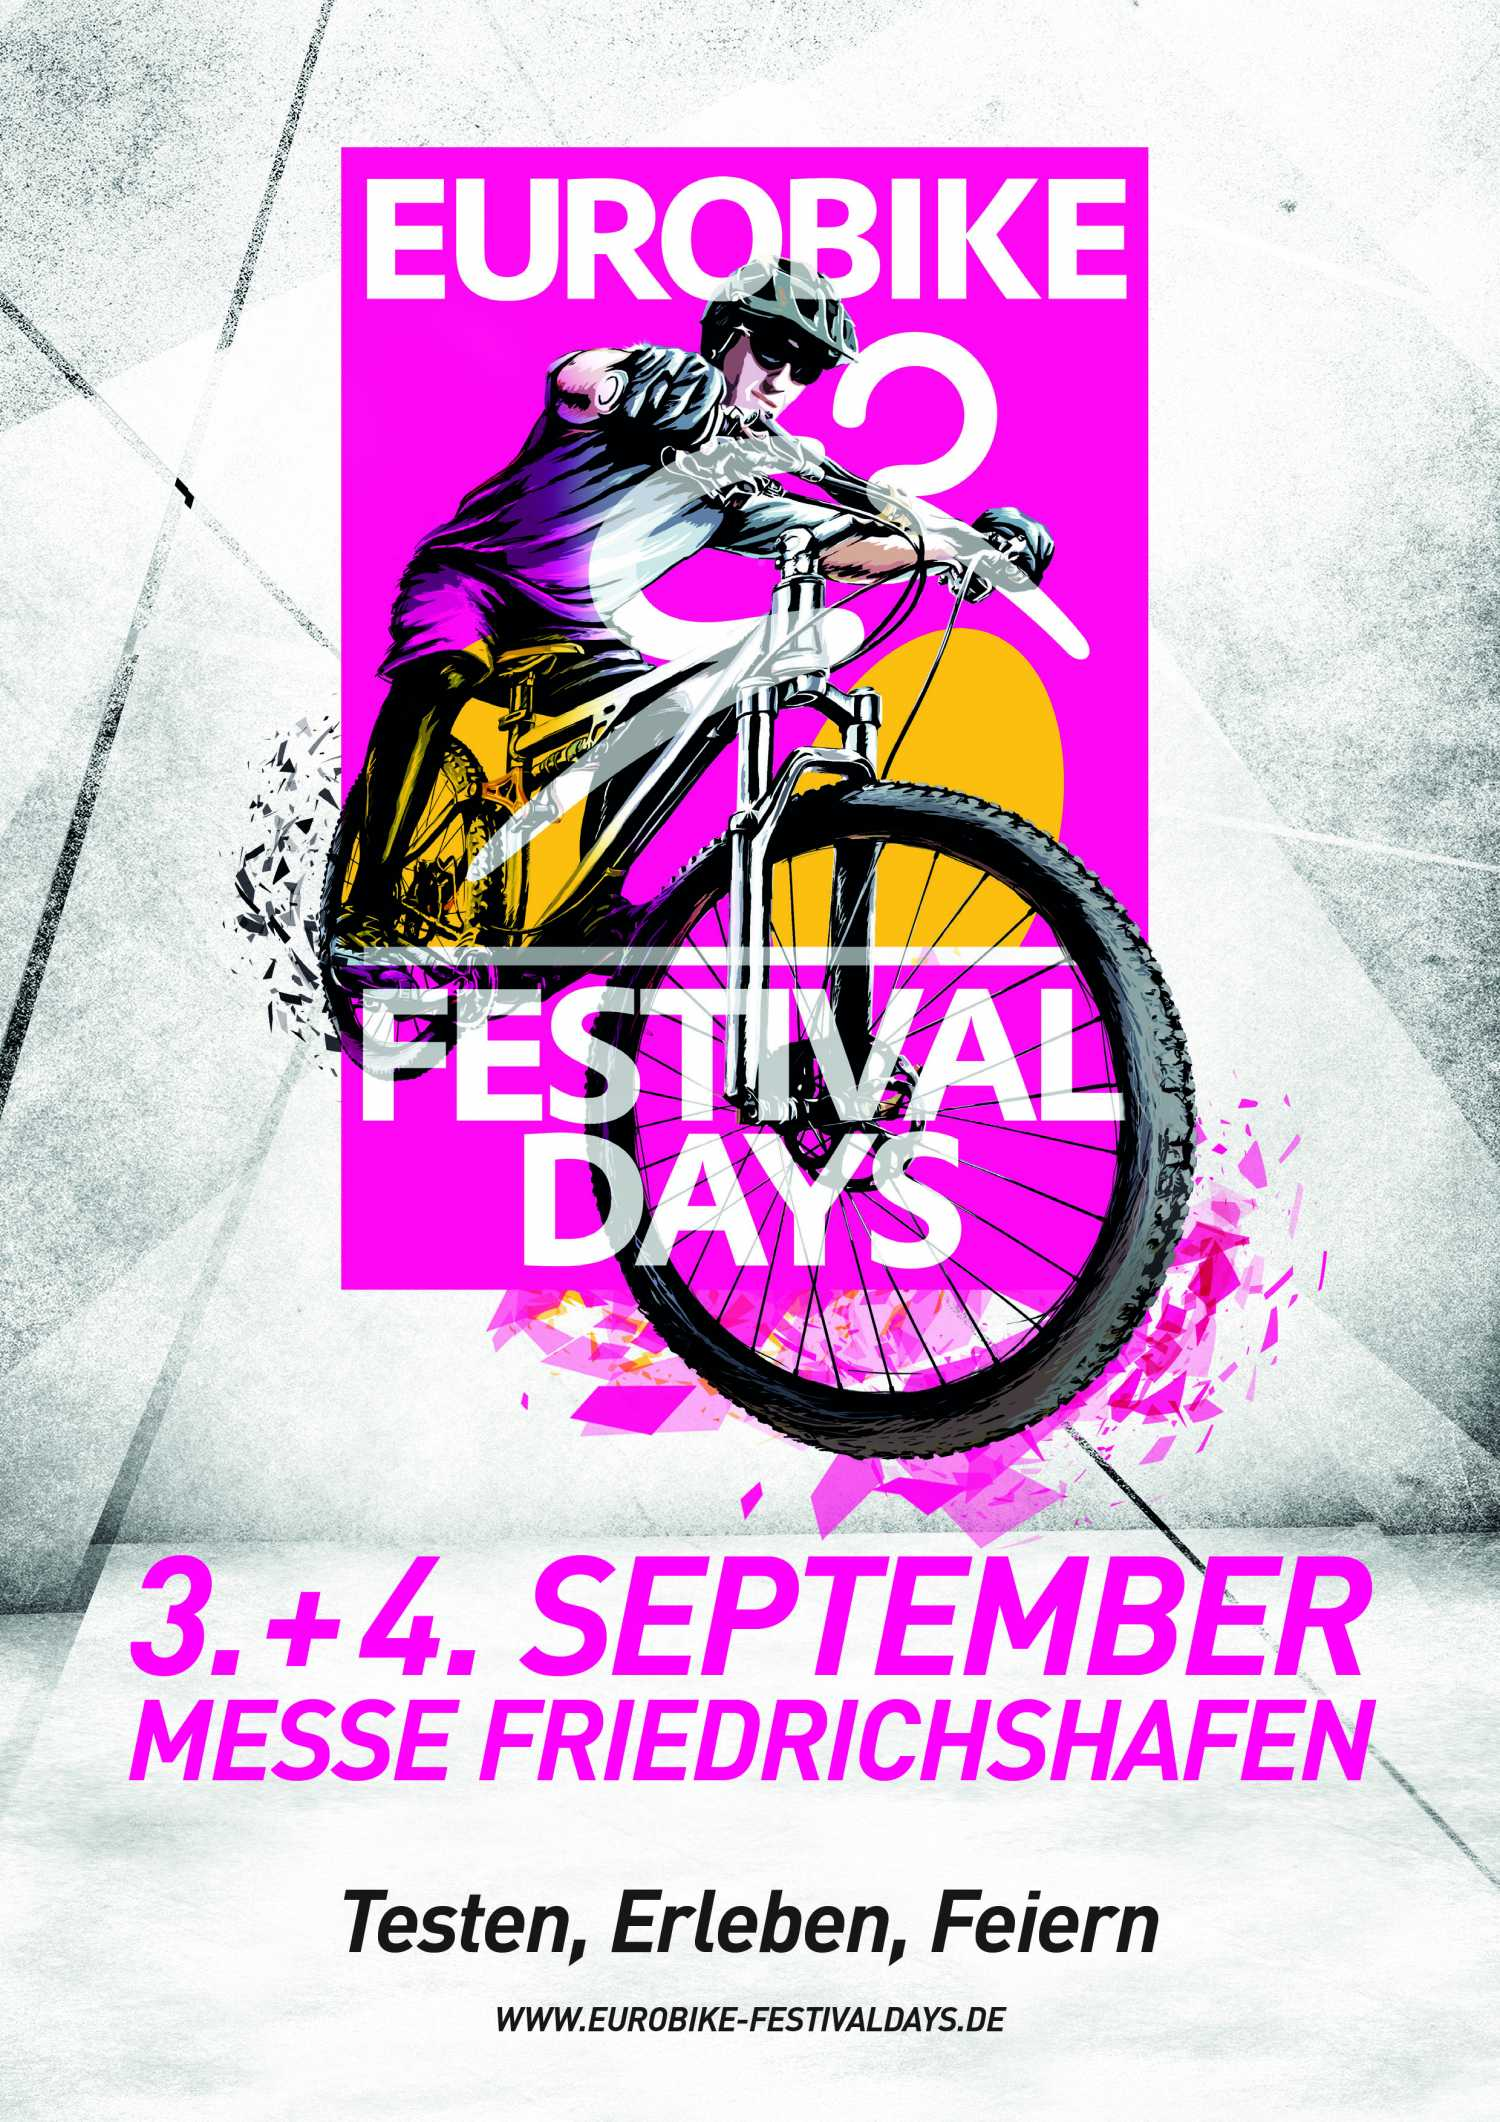 Eurobike Festival Days - Key Visual